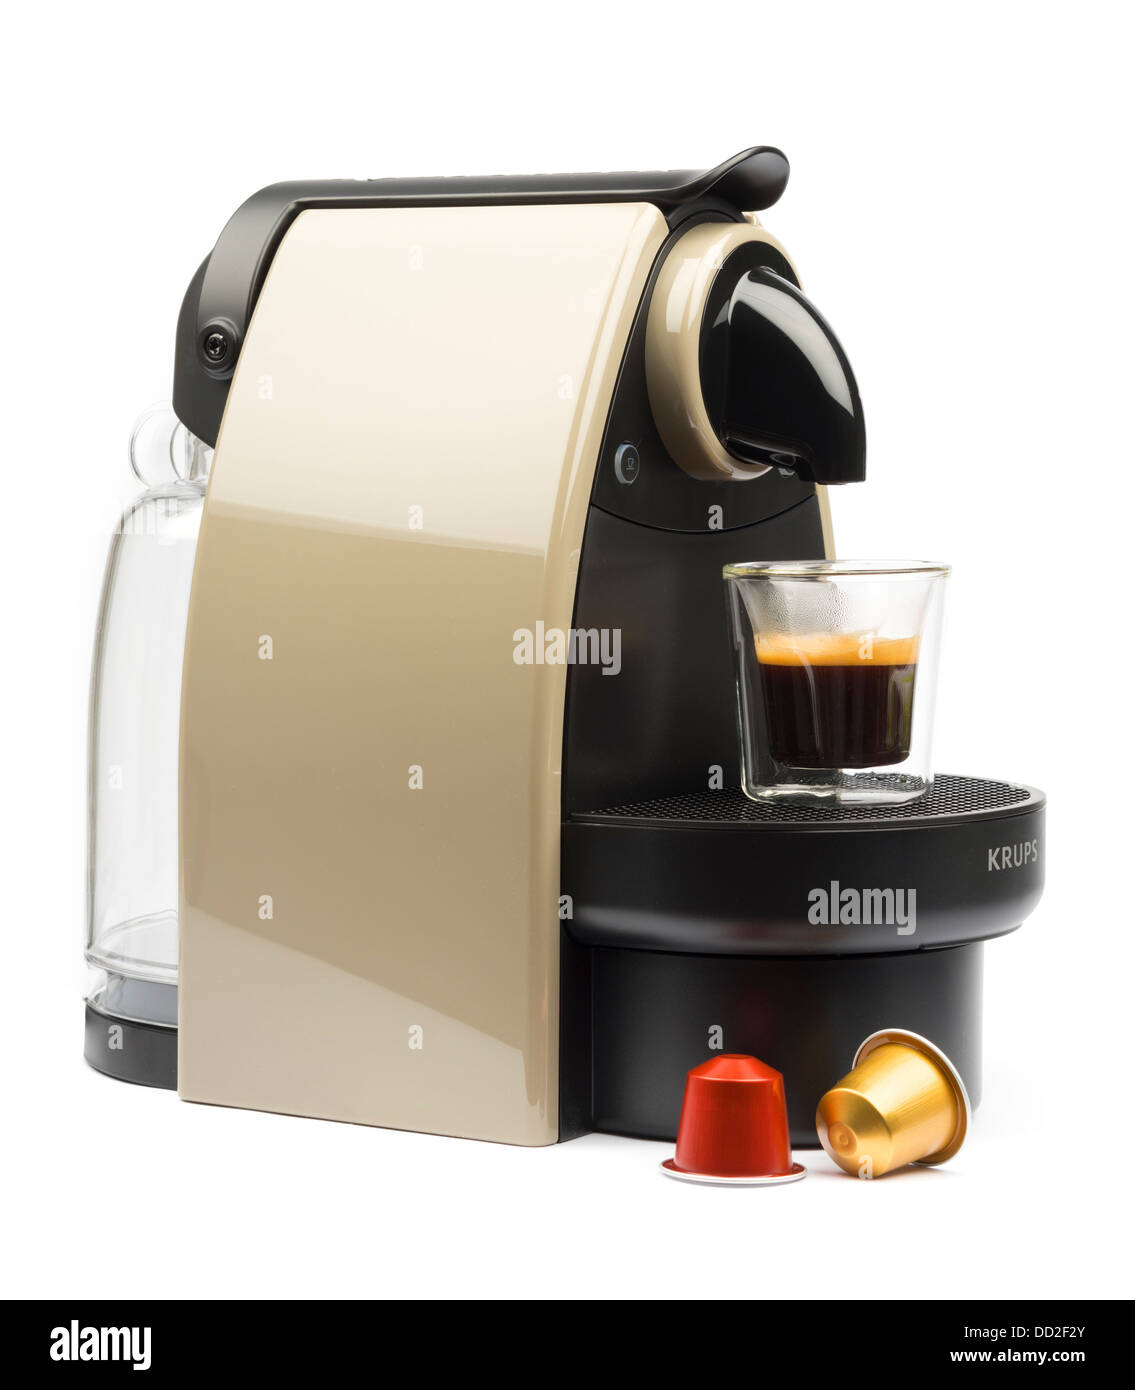 Krups essenza auto xn 2140 earth nespresso coffee machine cut out stock photo royalty free - Machine a cafe krups nespresso ...